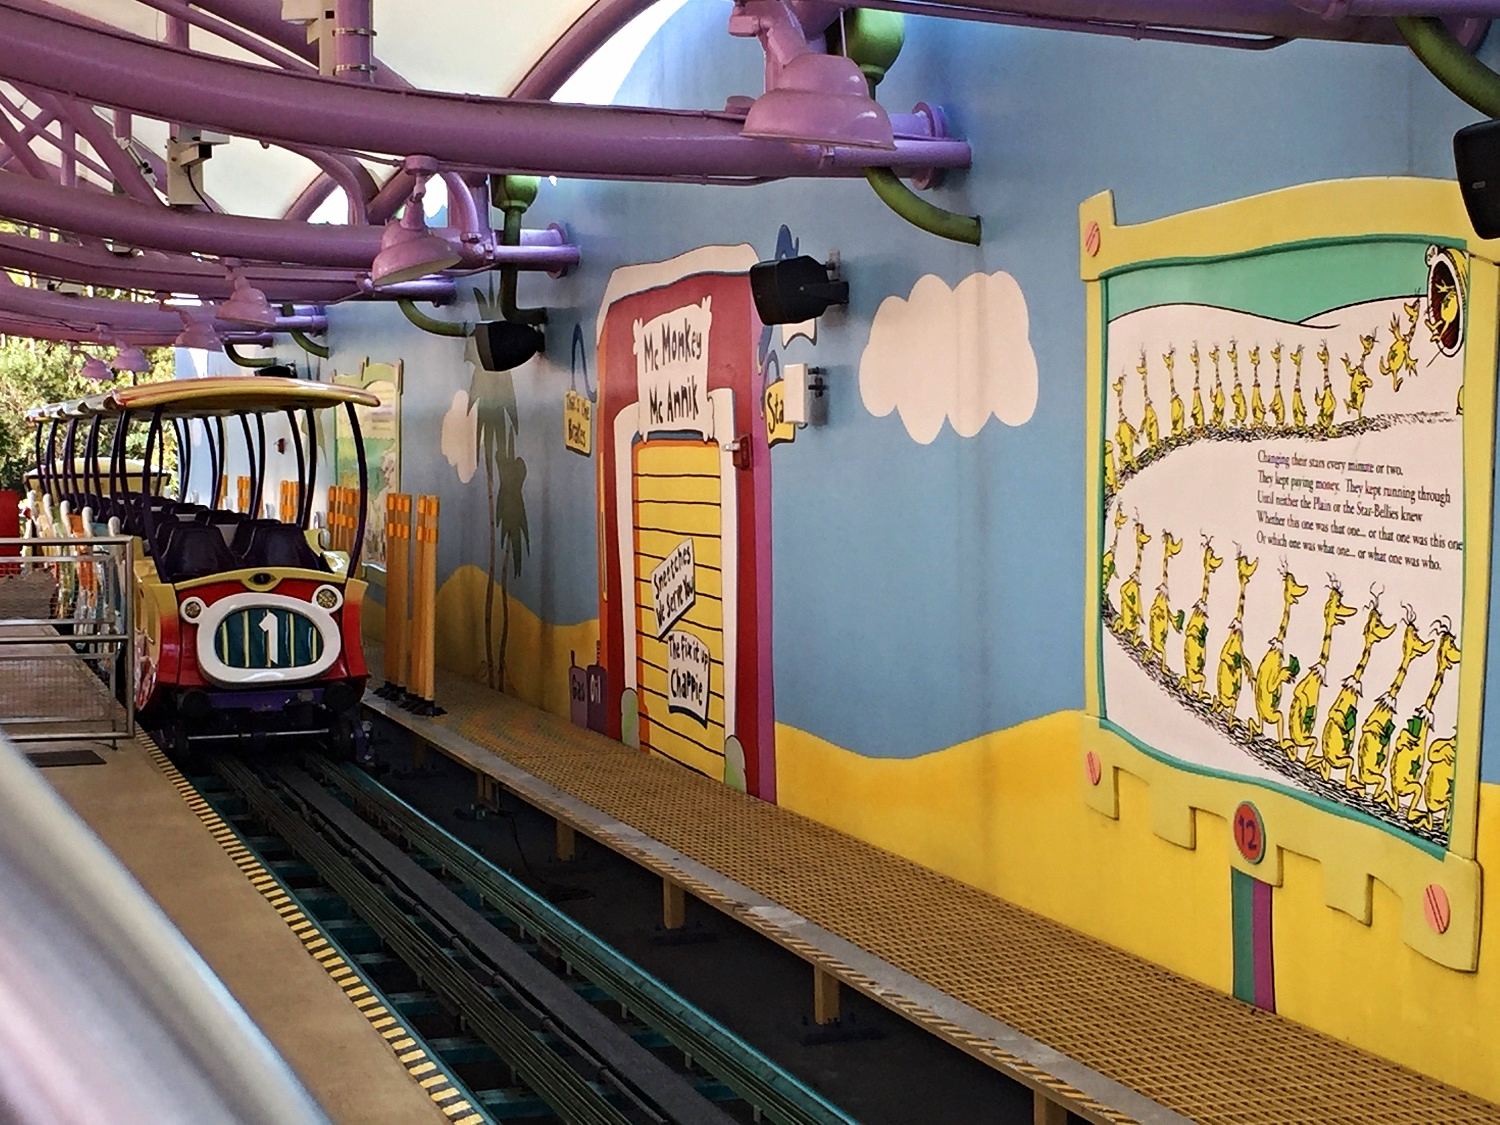 Ride Vehicle for High in the Sky Seuss Trolley Train Ride